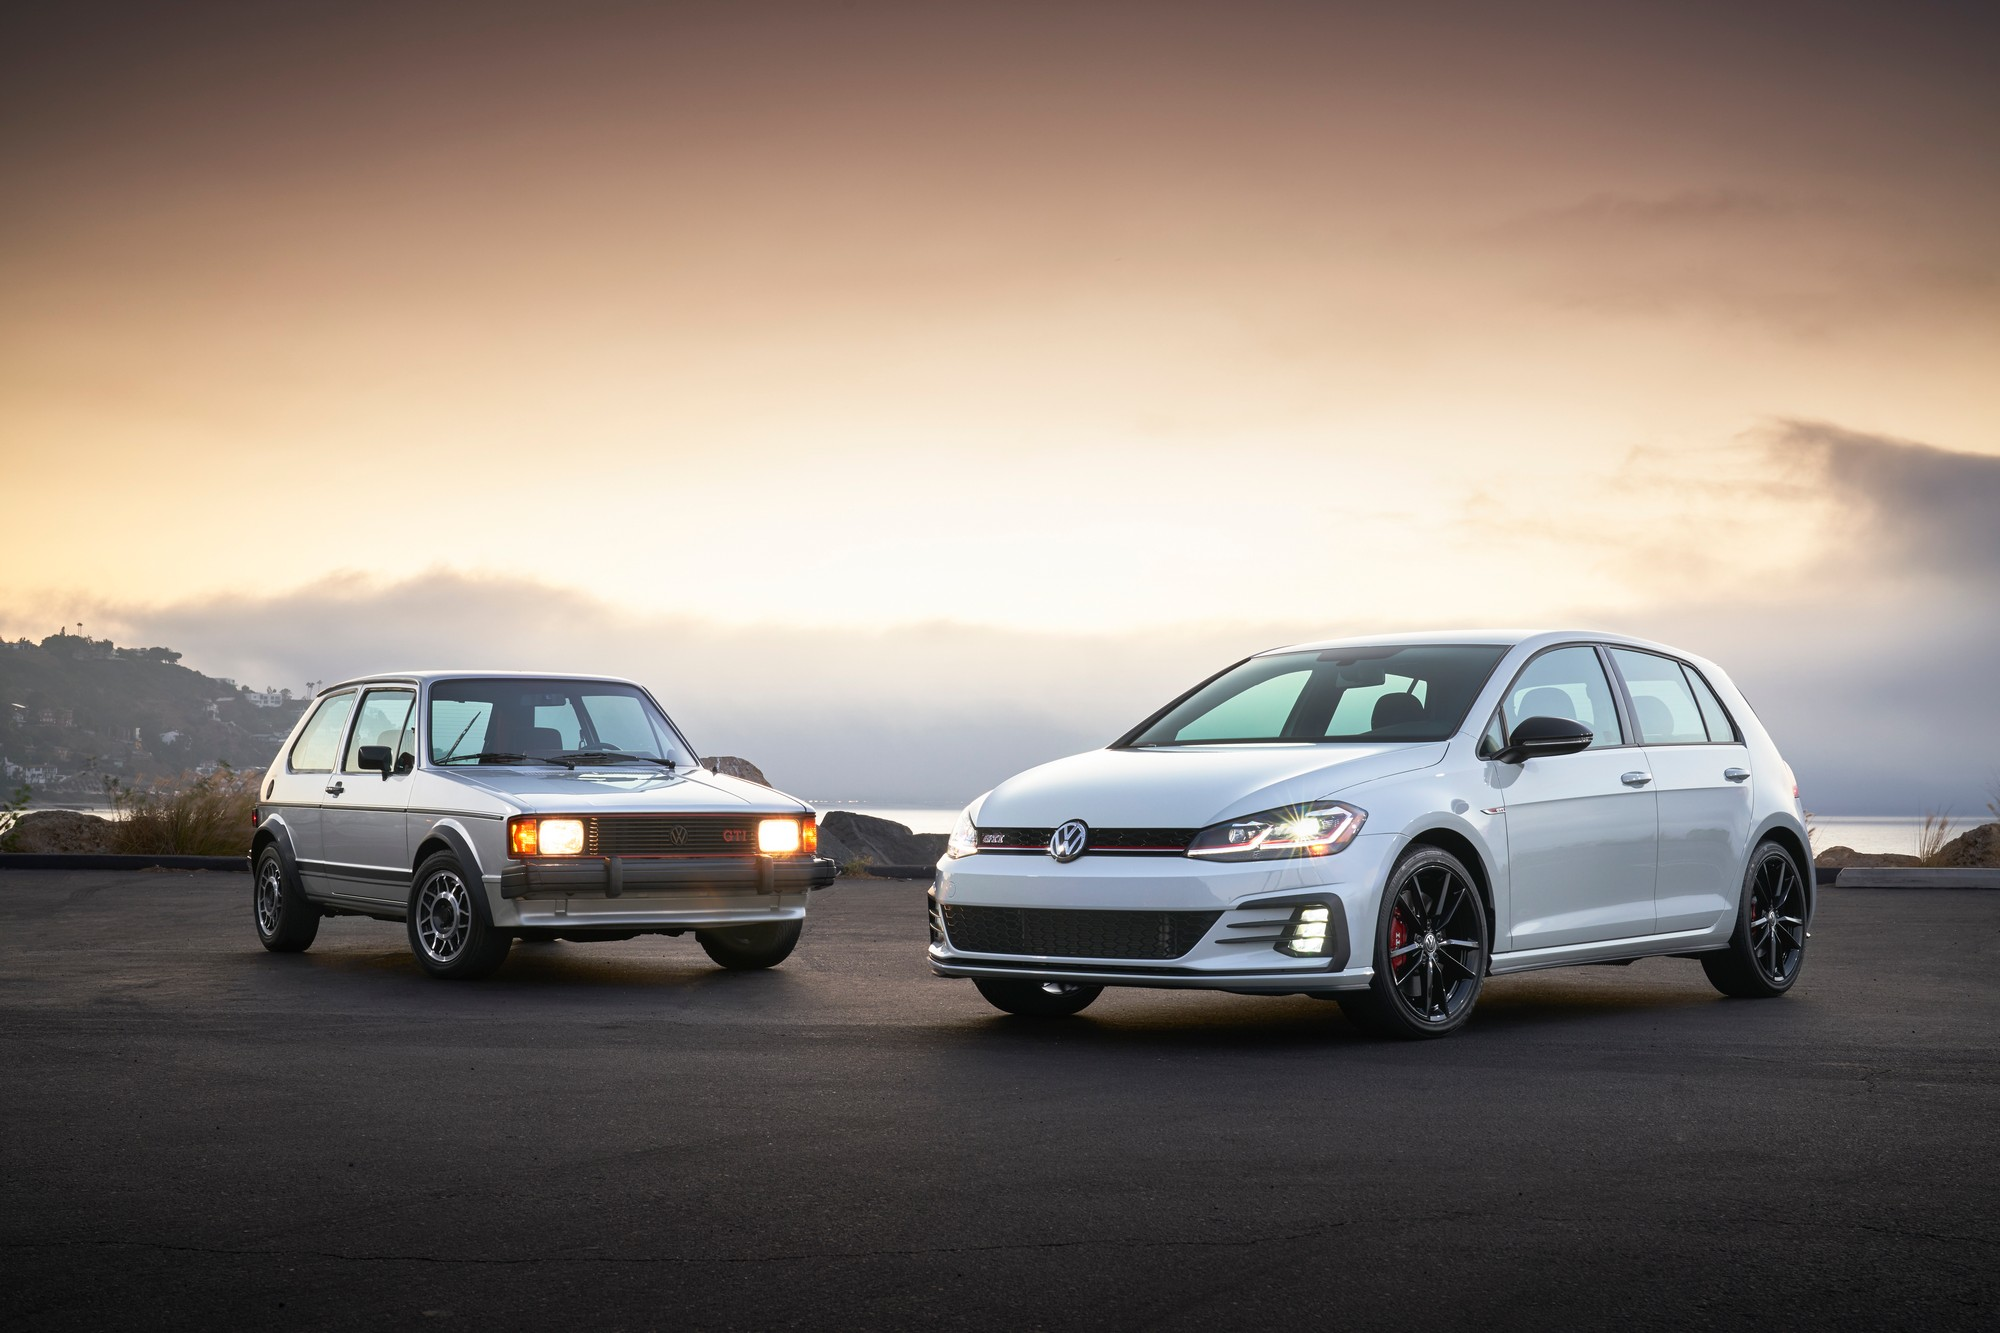 1984_Mk1_Rabbit_GTI_and_2019_GTI_Rabbit_Edition-Large-10552